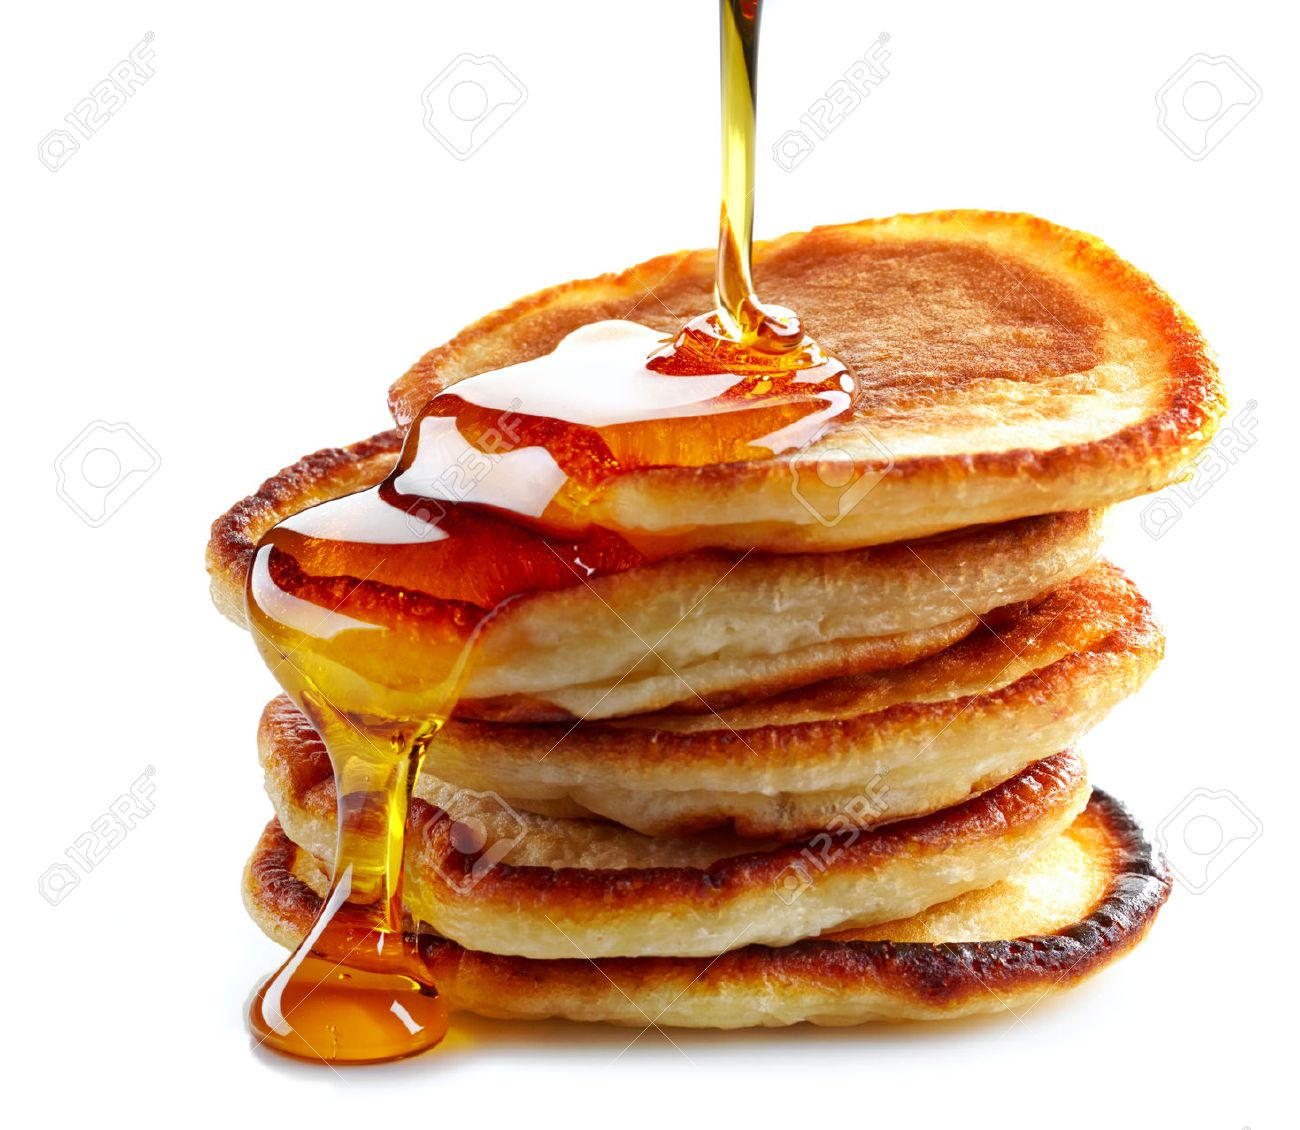 Stack Of Pancakes On White Background Stock Photo Picture And 1300x1130